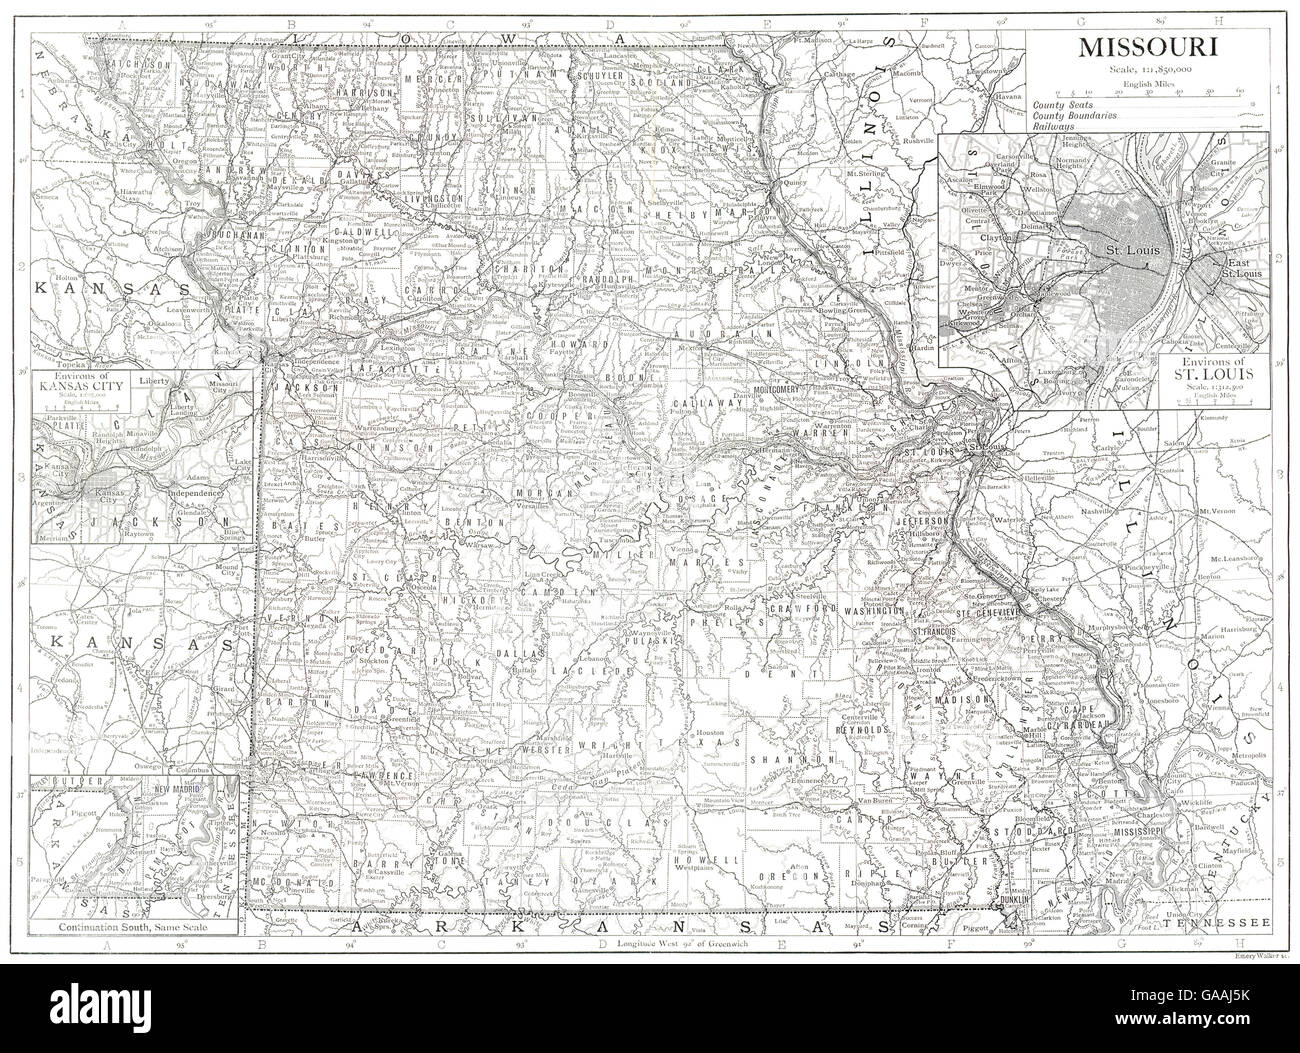 MISSOURI: State map showing counties. Inset maps of St Louis Kansas on springfield missouri on state map, kansas city missouri united states map, wichita kansas on state map, salt lake city utah on state map, olathe kansas on state map, kansas city missouri on national map, joplin missouri on state map, lawrence kansas on state map,